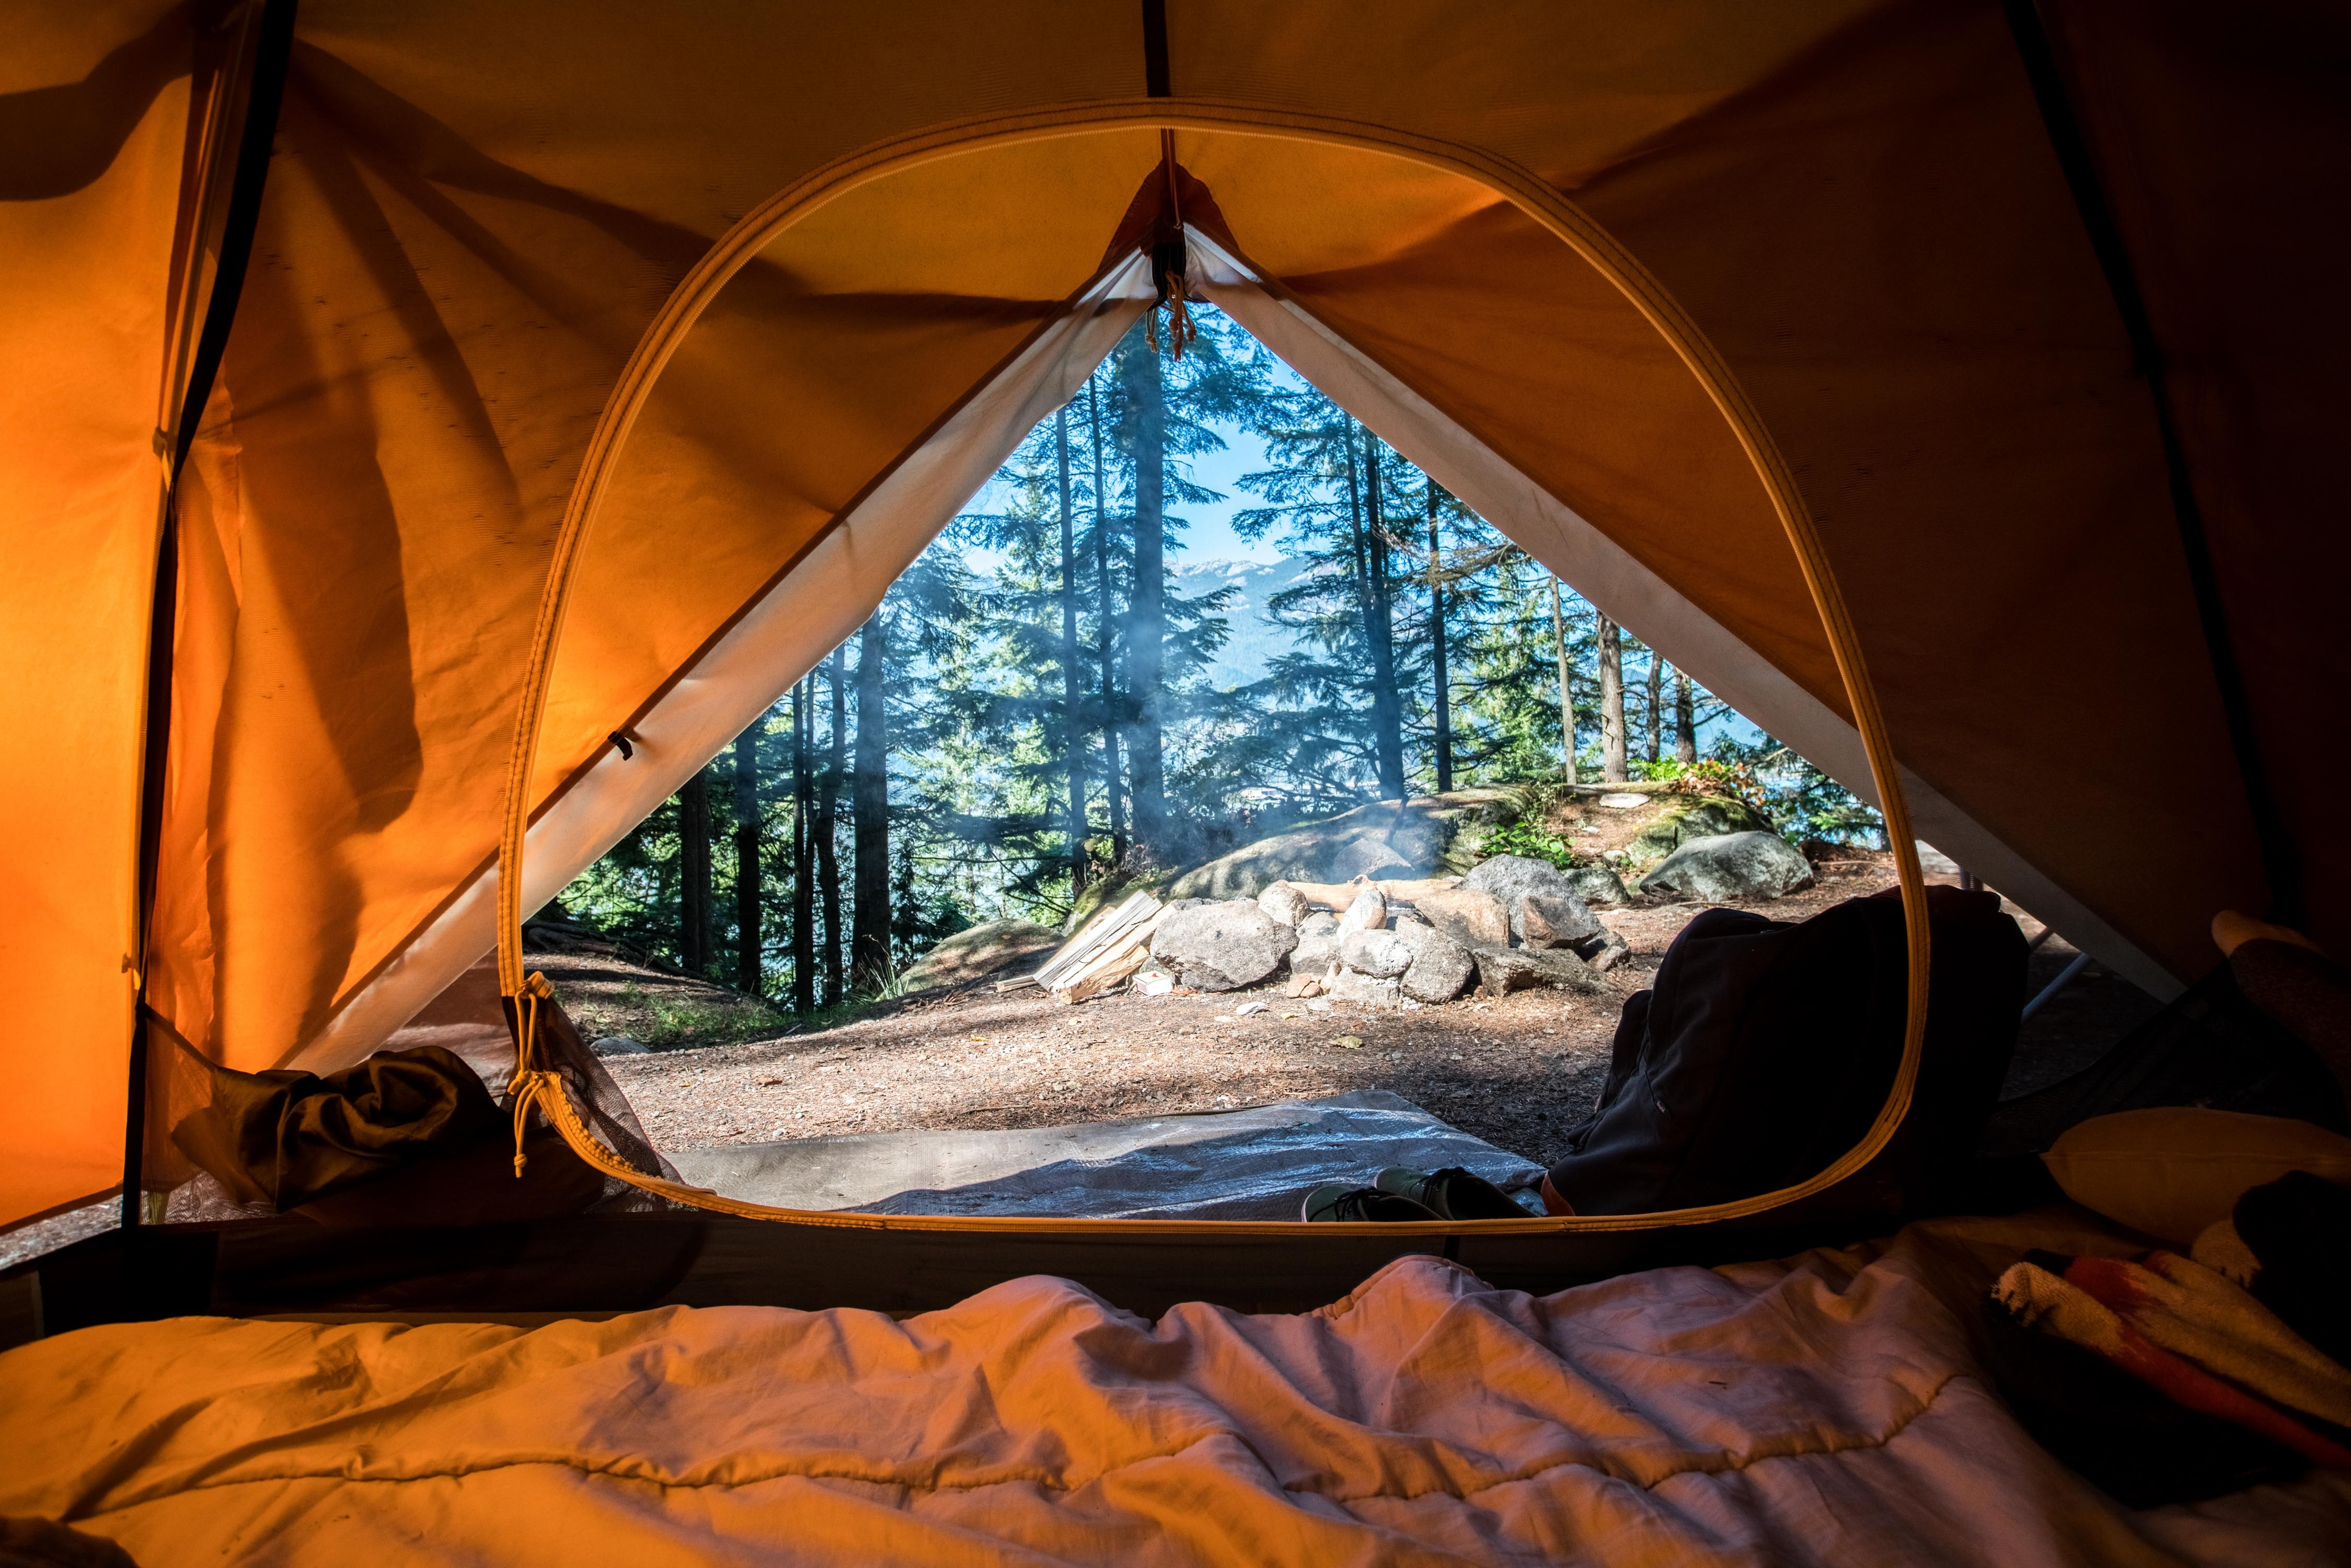 View From Inside Tent Looking Out At Pine Forest By Scott Goodwill Unsplash